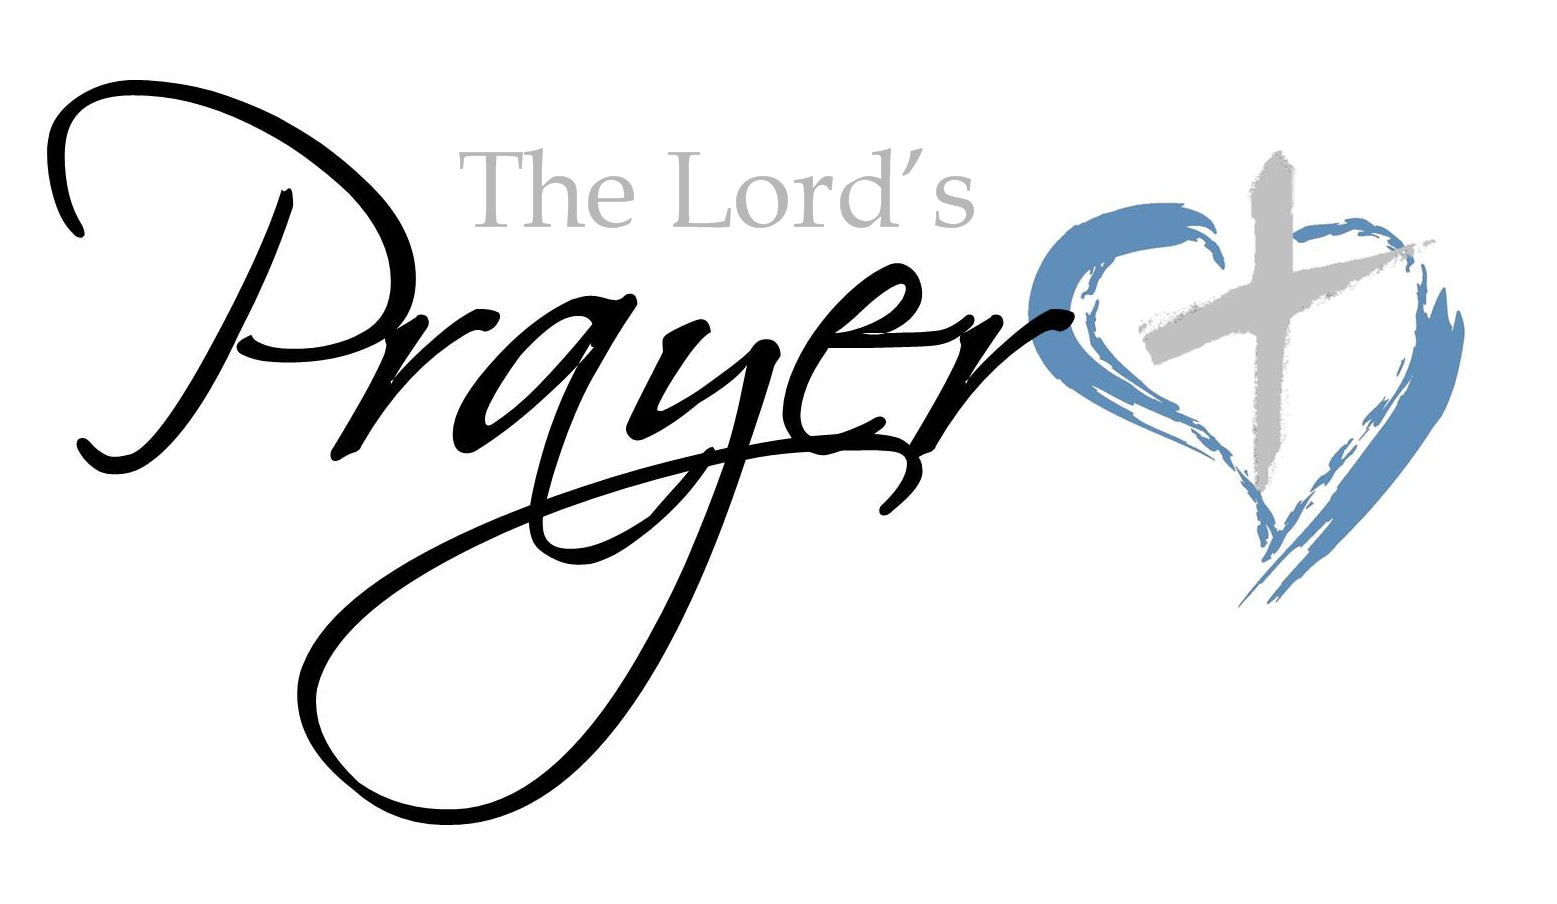 Lord s prayer clipart vector library library Free Lord\'s Prayer Cliparts, Download Free Clip Art, Free ... vector library library